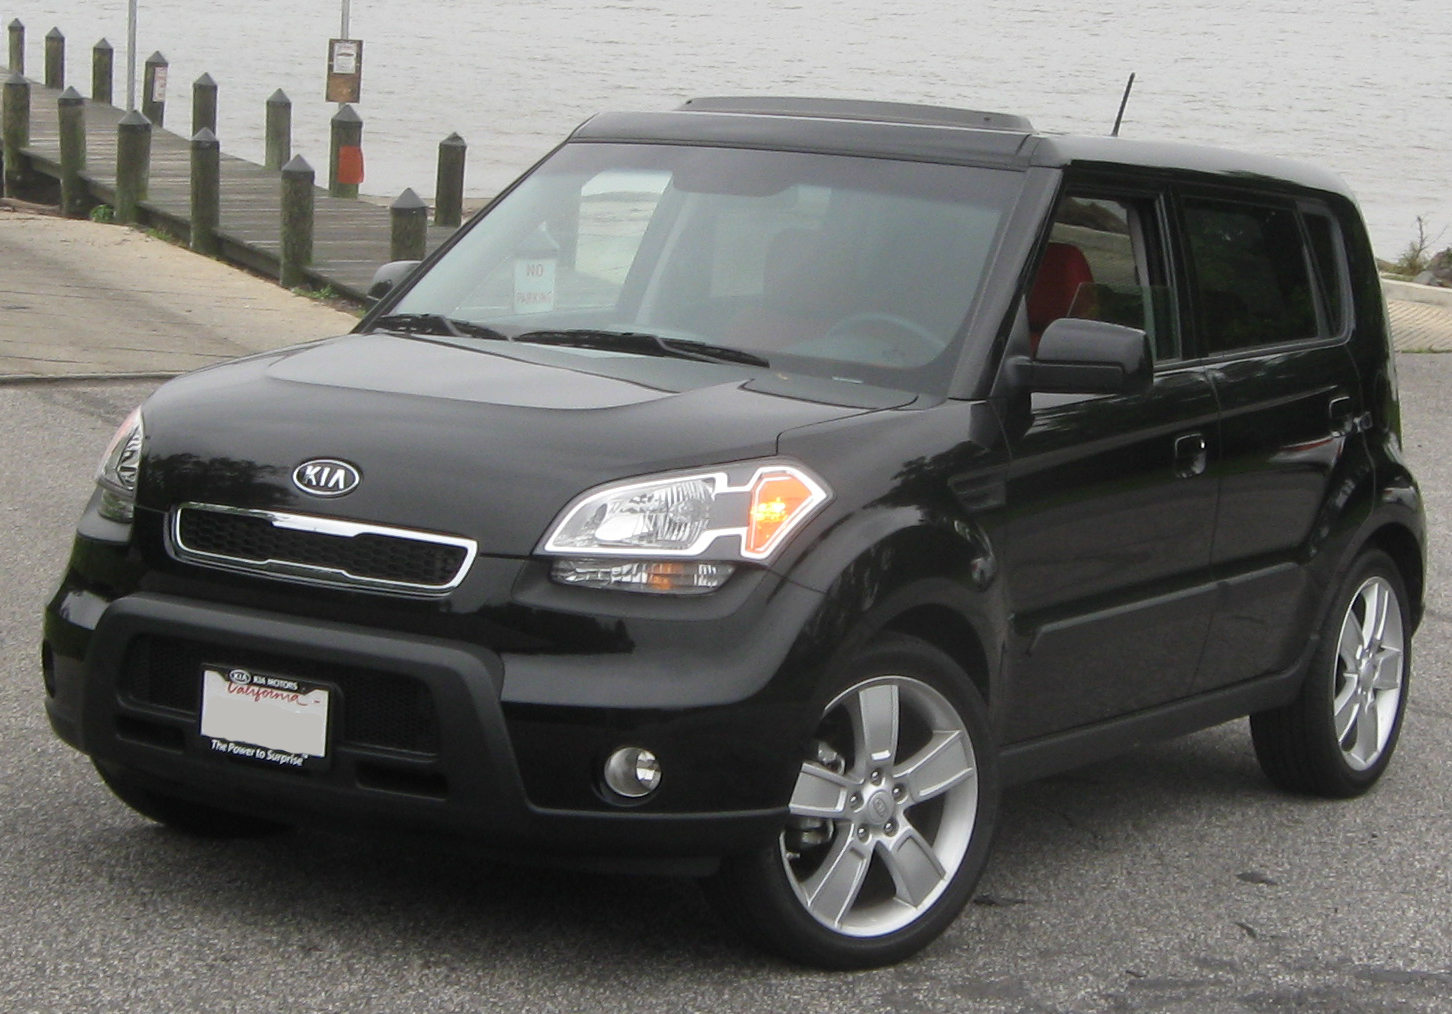 kia soul history photos on better parts ltd. Black Bedroom Furniture Sets. Home Design Ideas